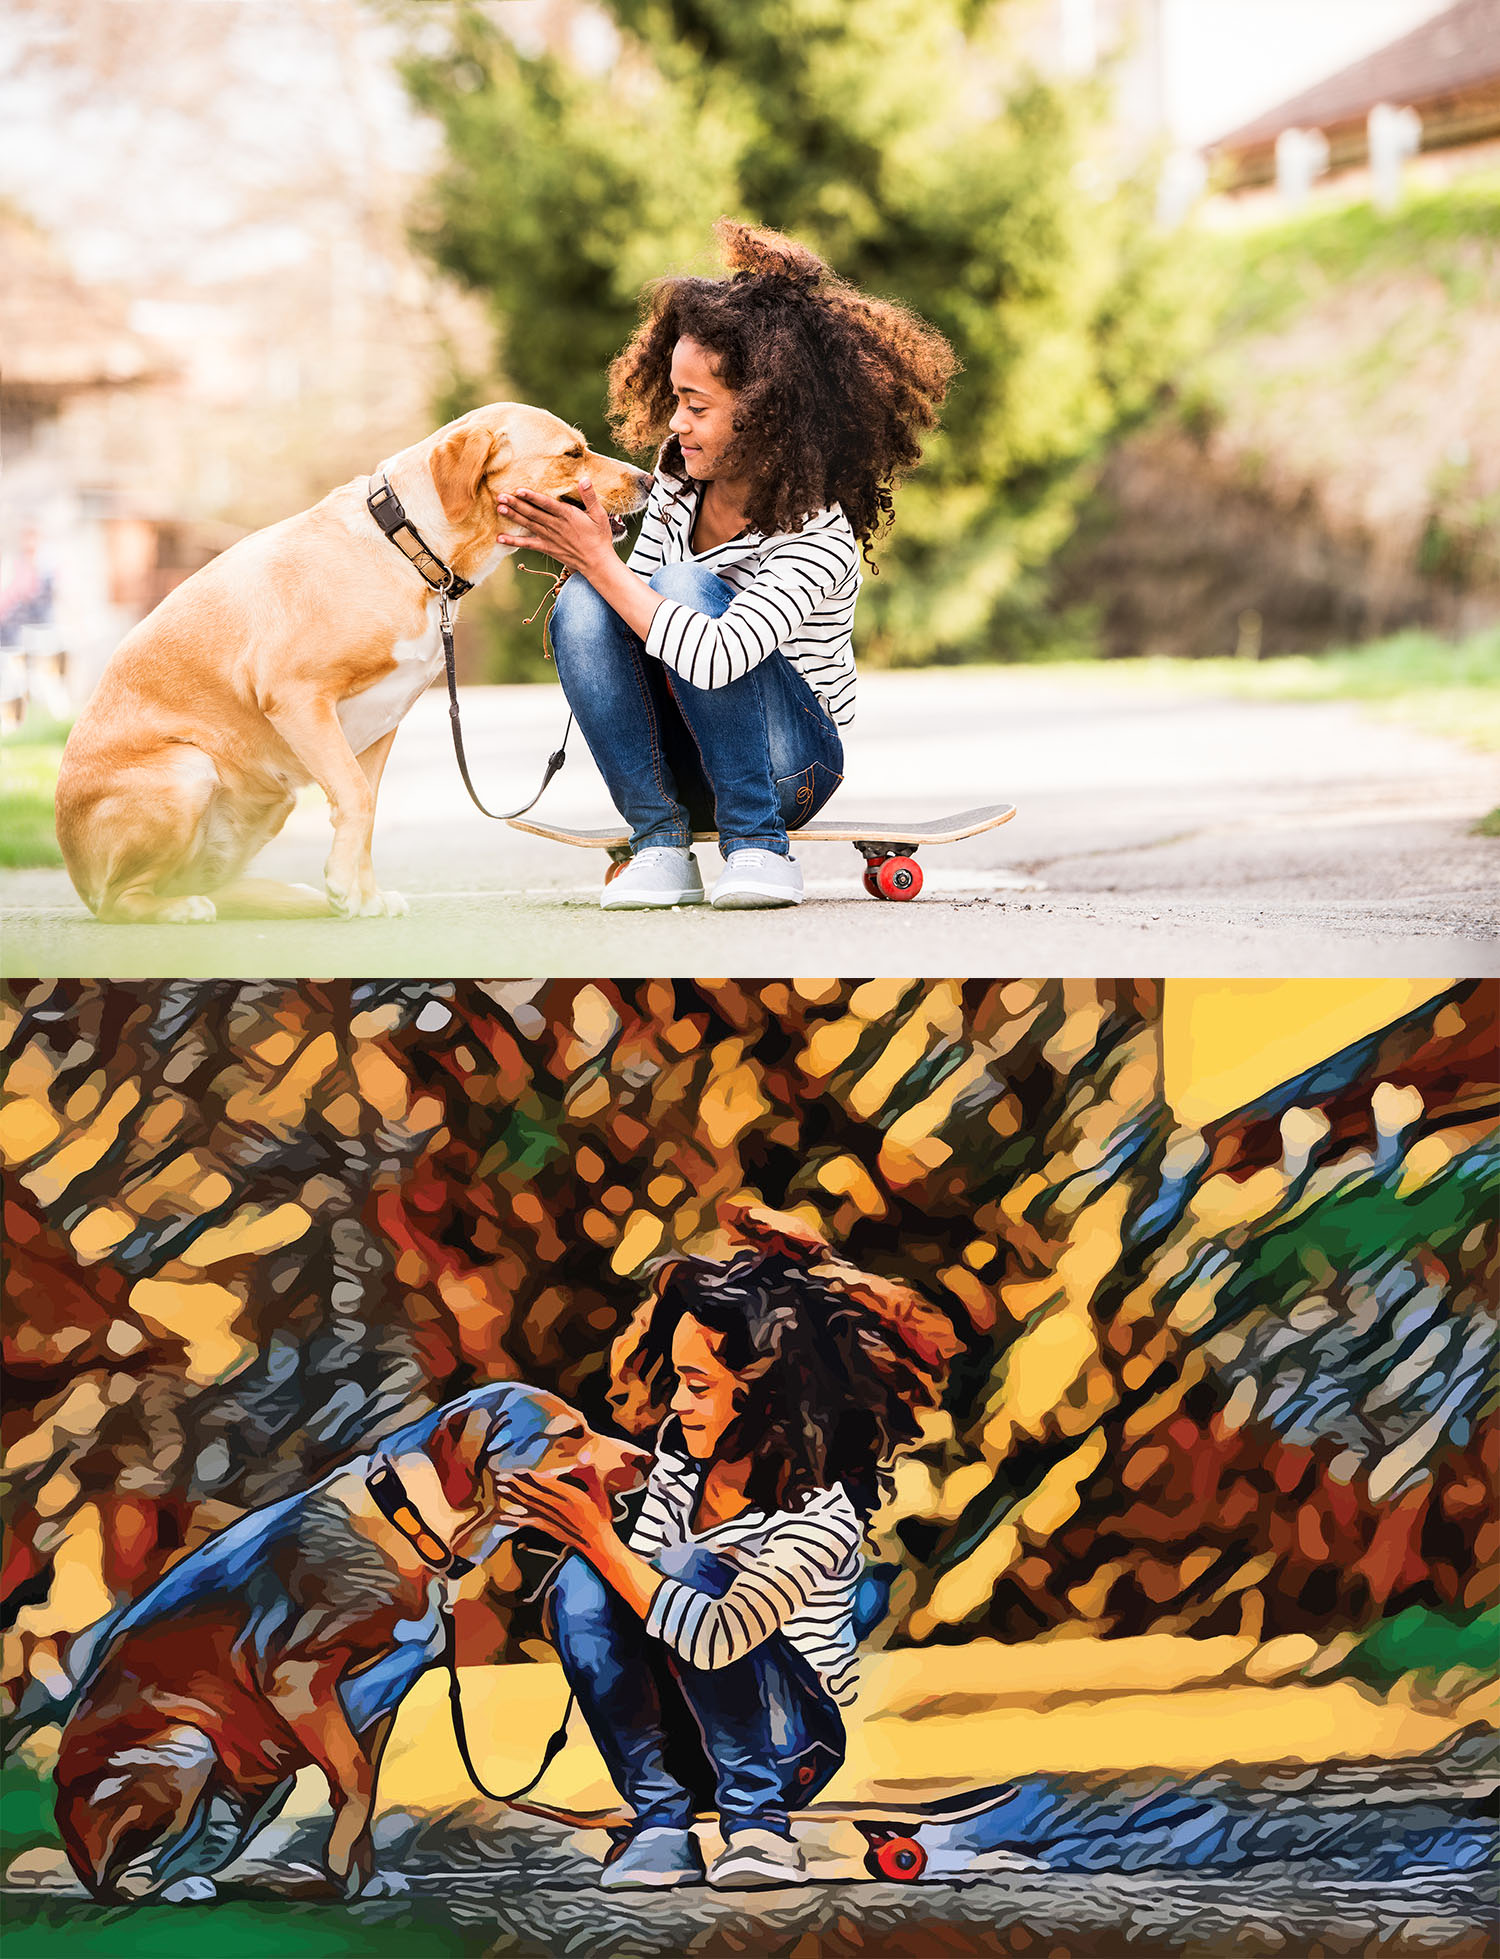 Before and after stylized Image of a girl sitting on a skateboard petting a dog